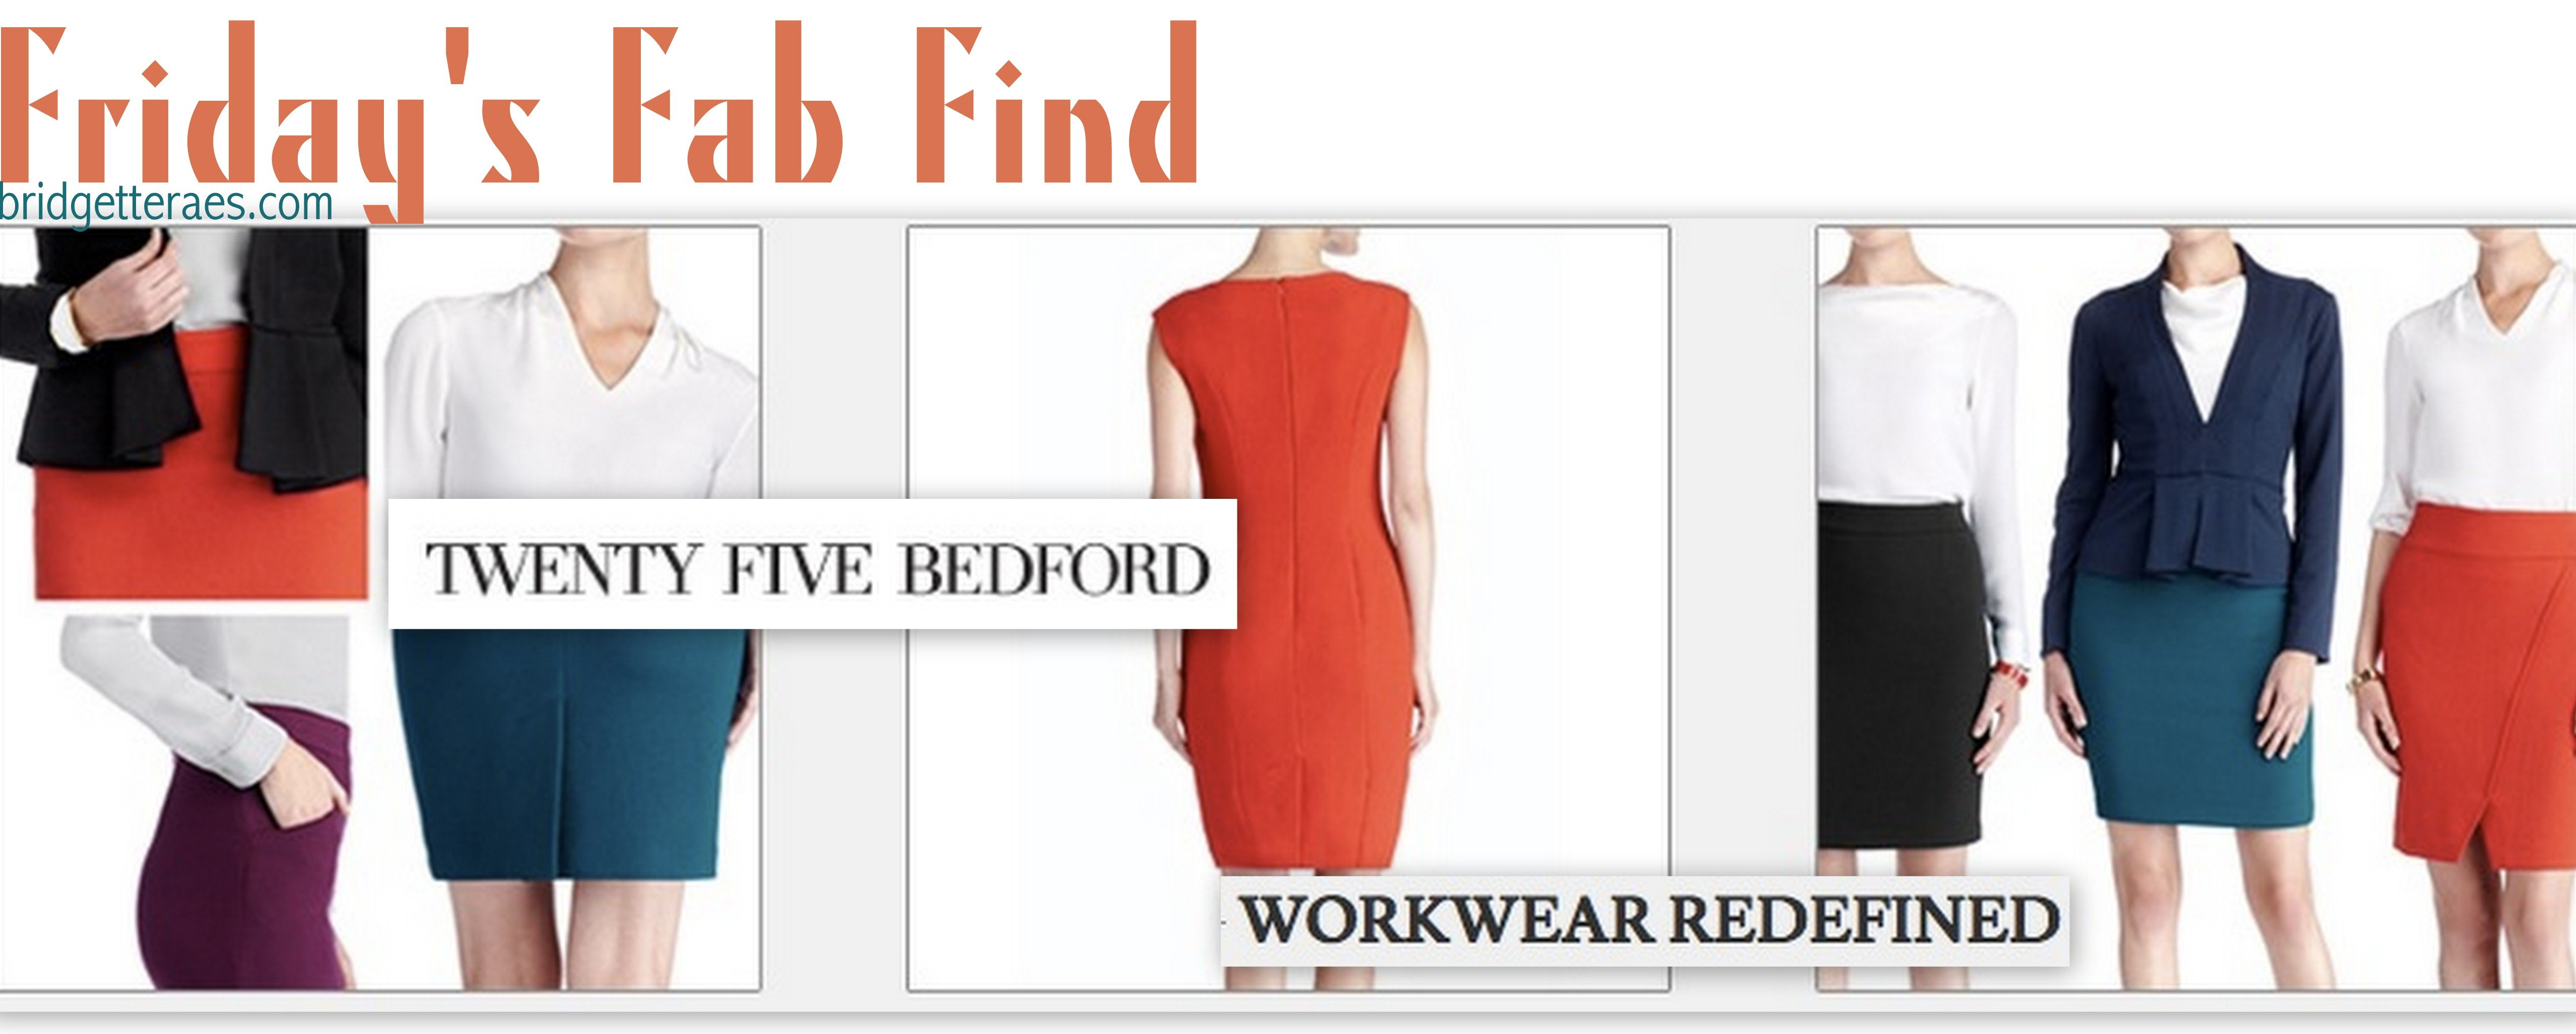 Friday's Fab Find: 25 Bedford